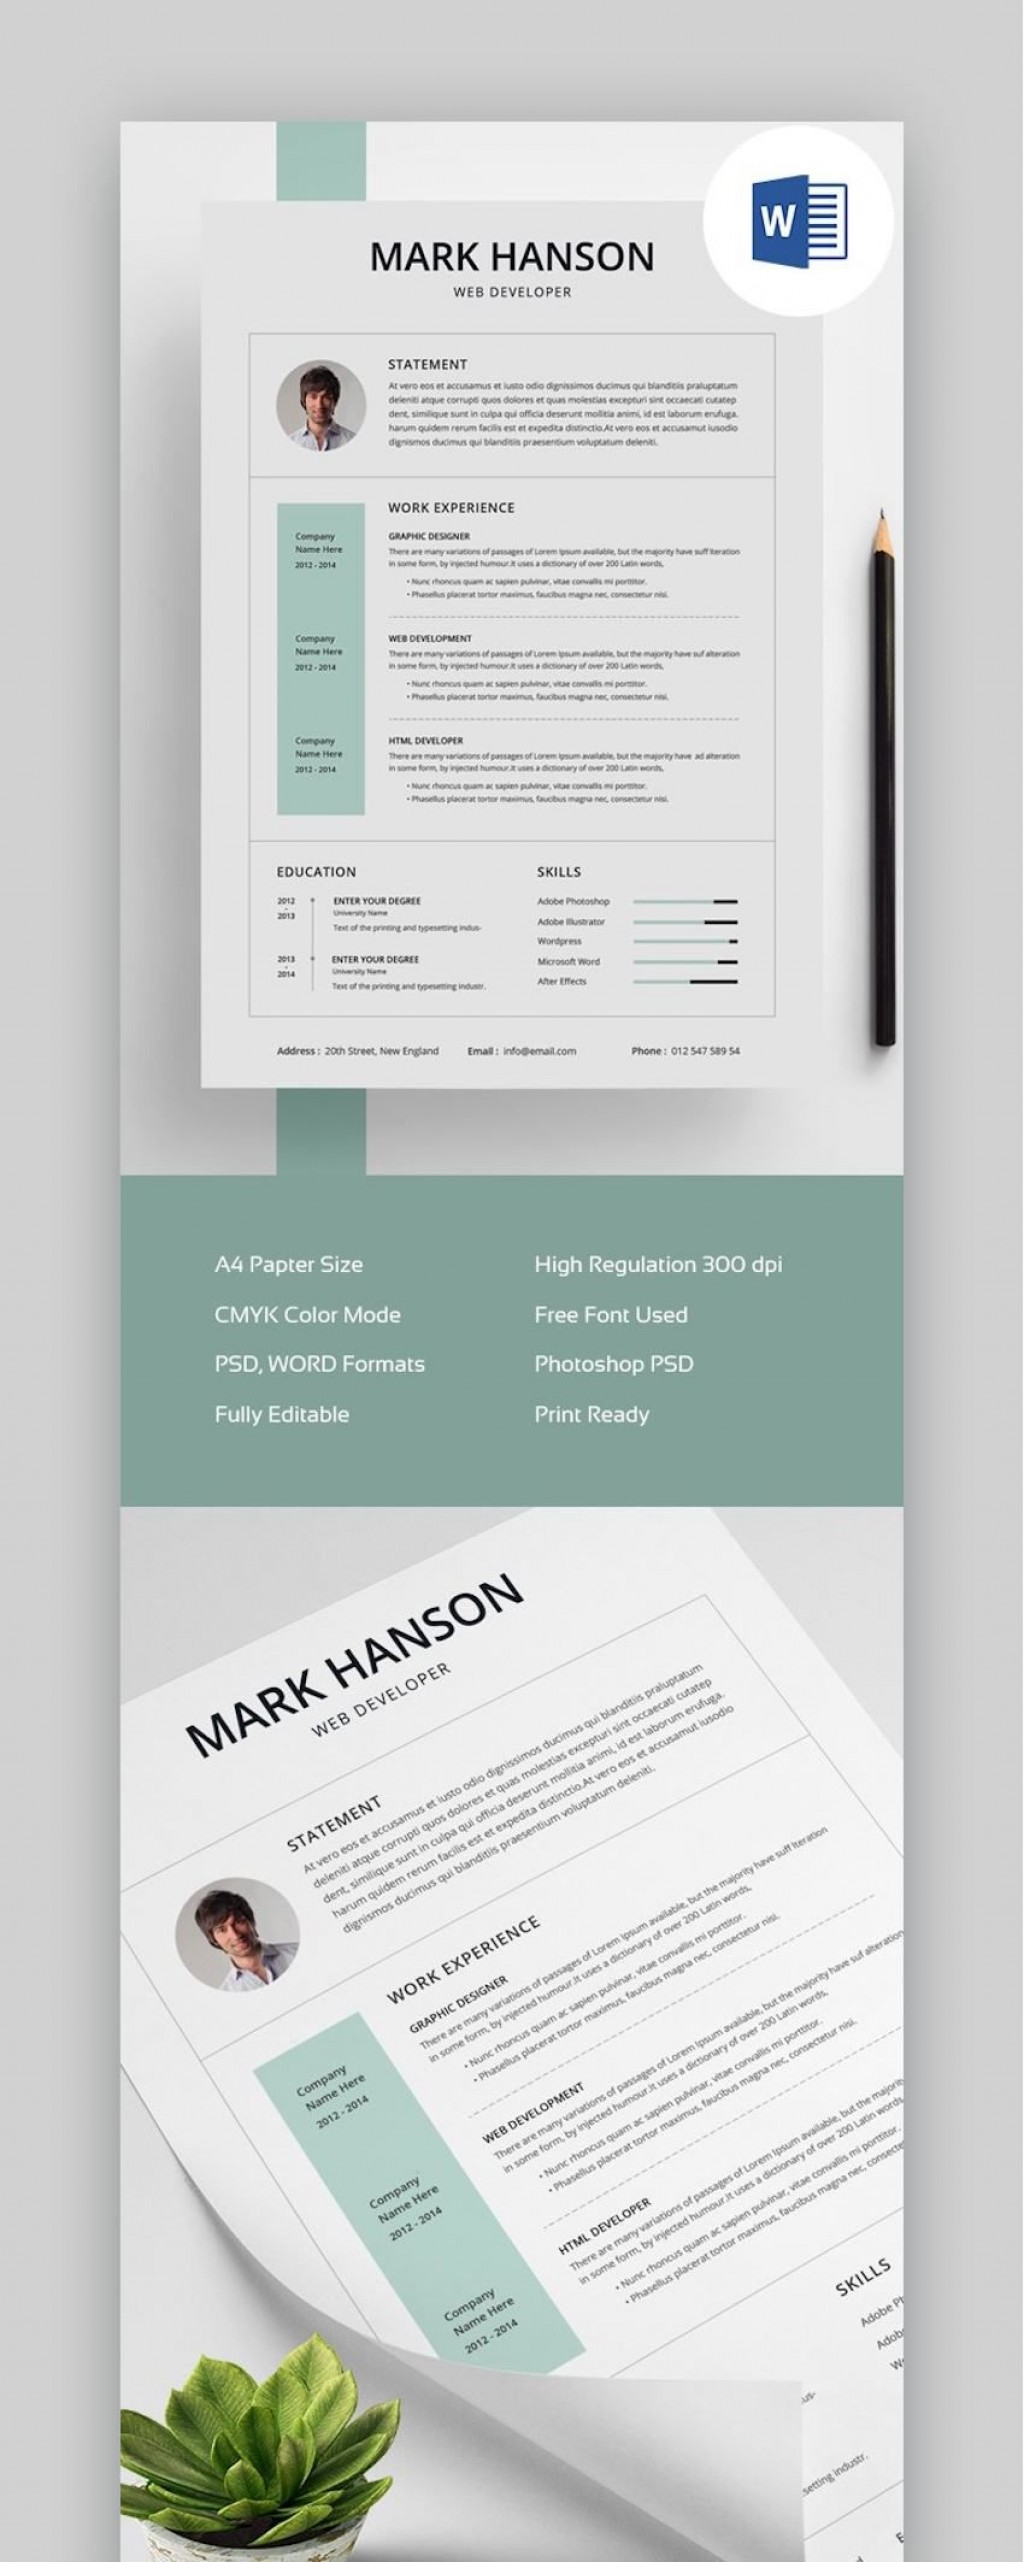 004 Remarkable Psd Cv Template Free Idea  2018 Vector Photo And File Download ArchitectLarge